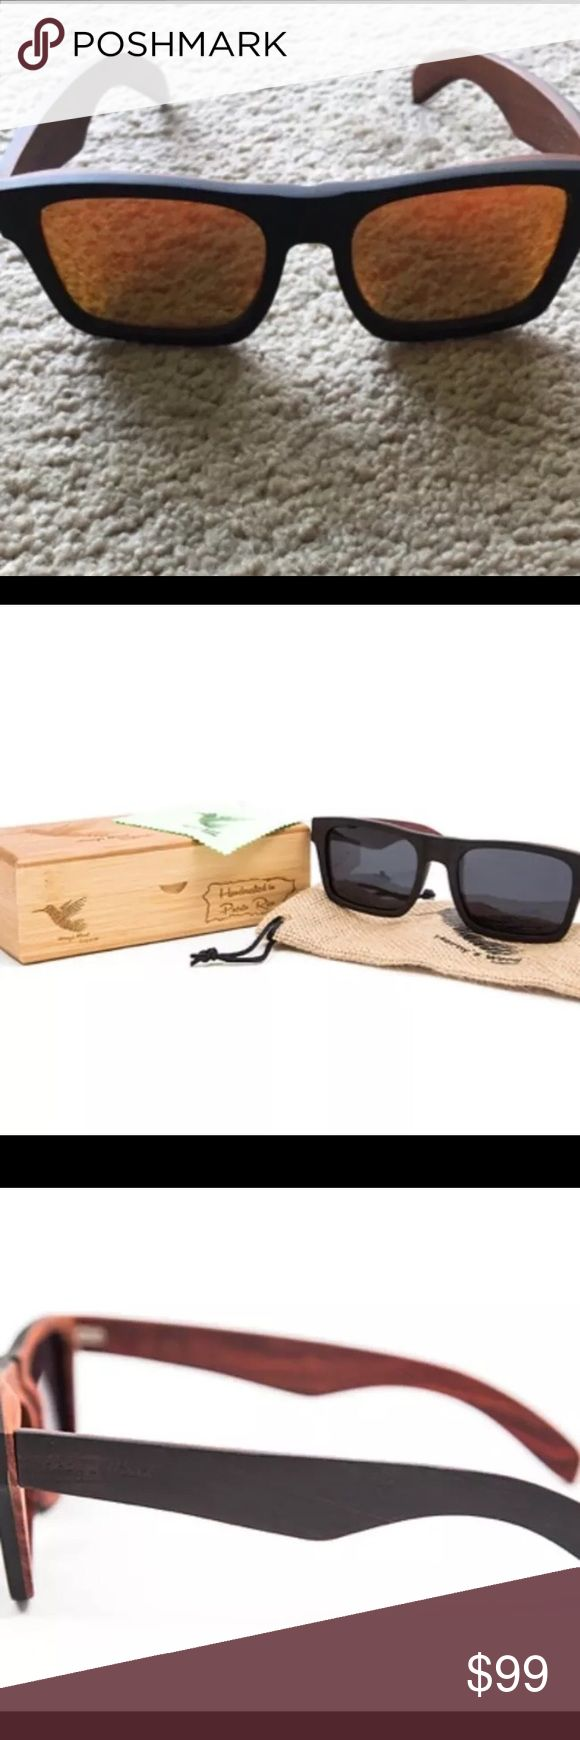 Herny's Wood Eiland Handcrafted Sunglasses Herny's Wood Sunglasses  Model - Eiland  Ebony Wood/Rose Wood Multi-Color Lens Stainless Steel Spring Loaded Hinges Hand Crafted in Puerto Rico   *These sunglasses are brand new. They are very difficult to find. If you go to their website you'll see they are sold out* Accessories Sunglasses